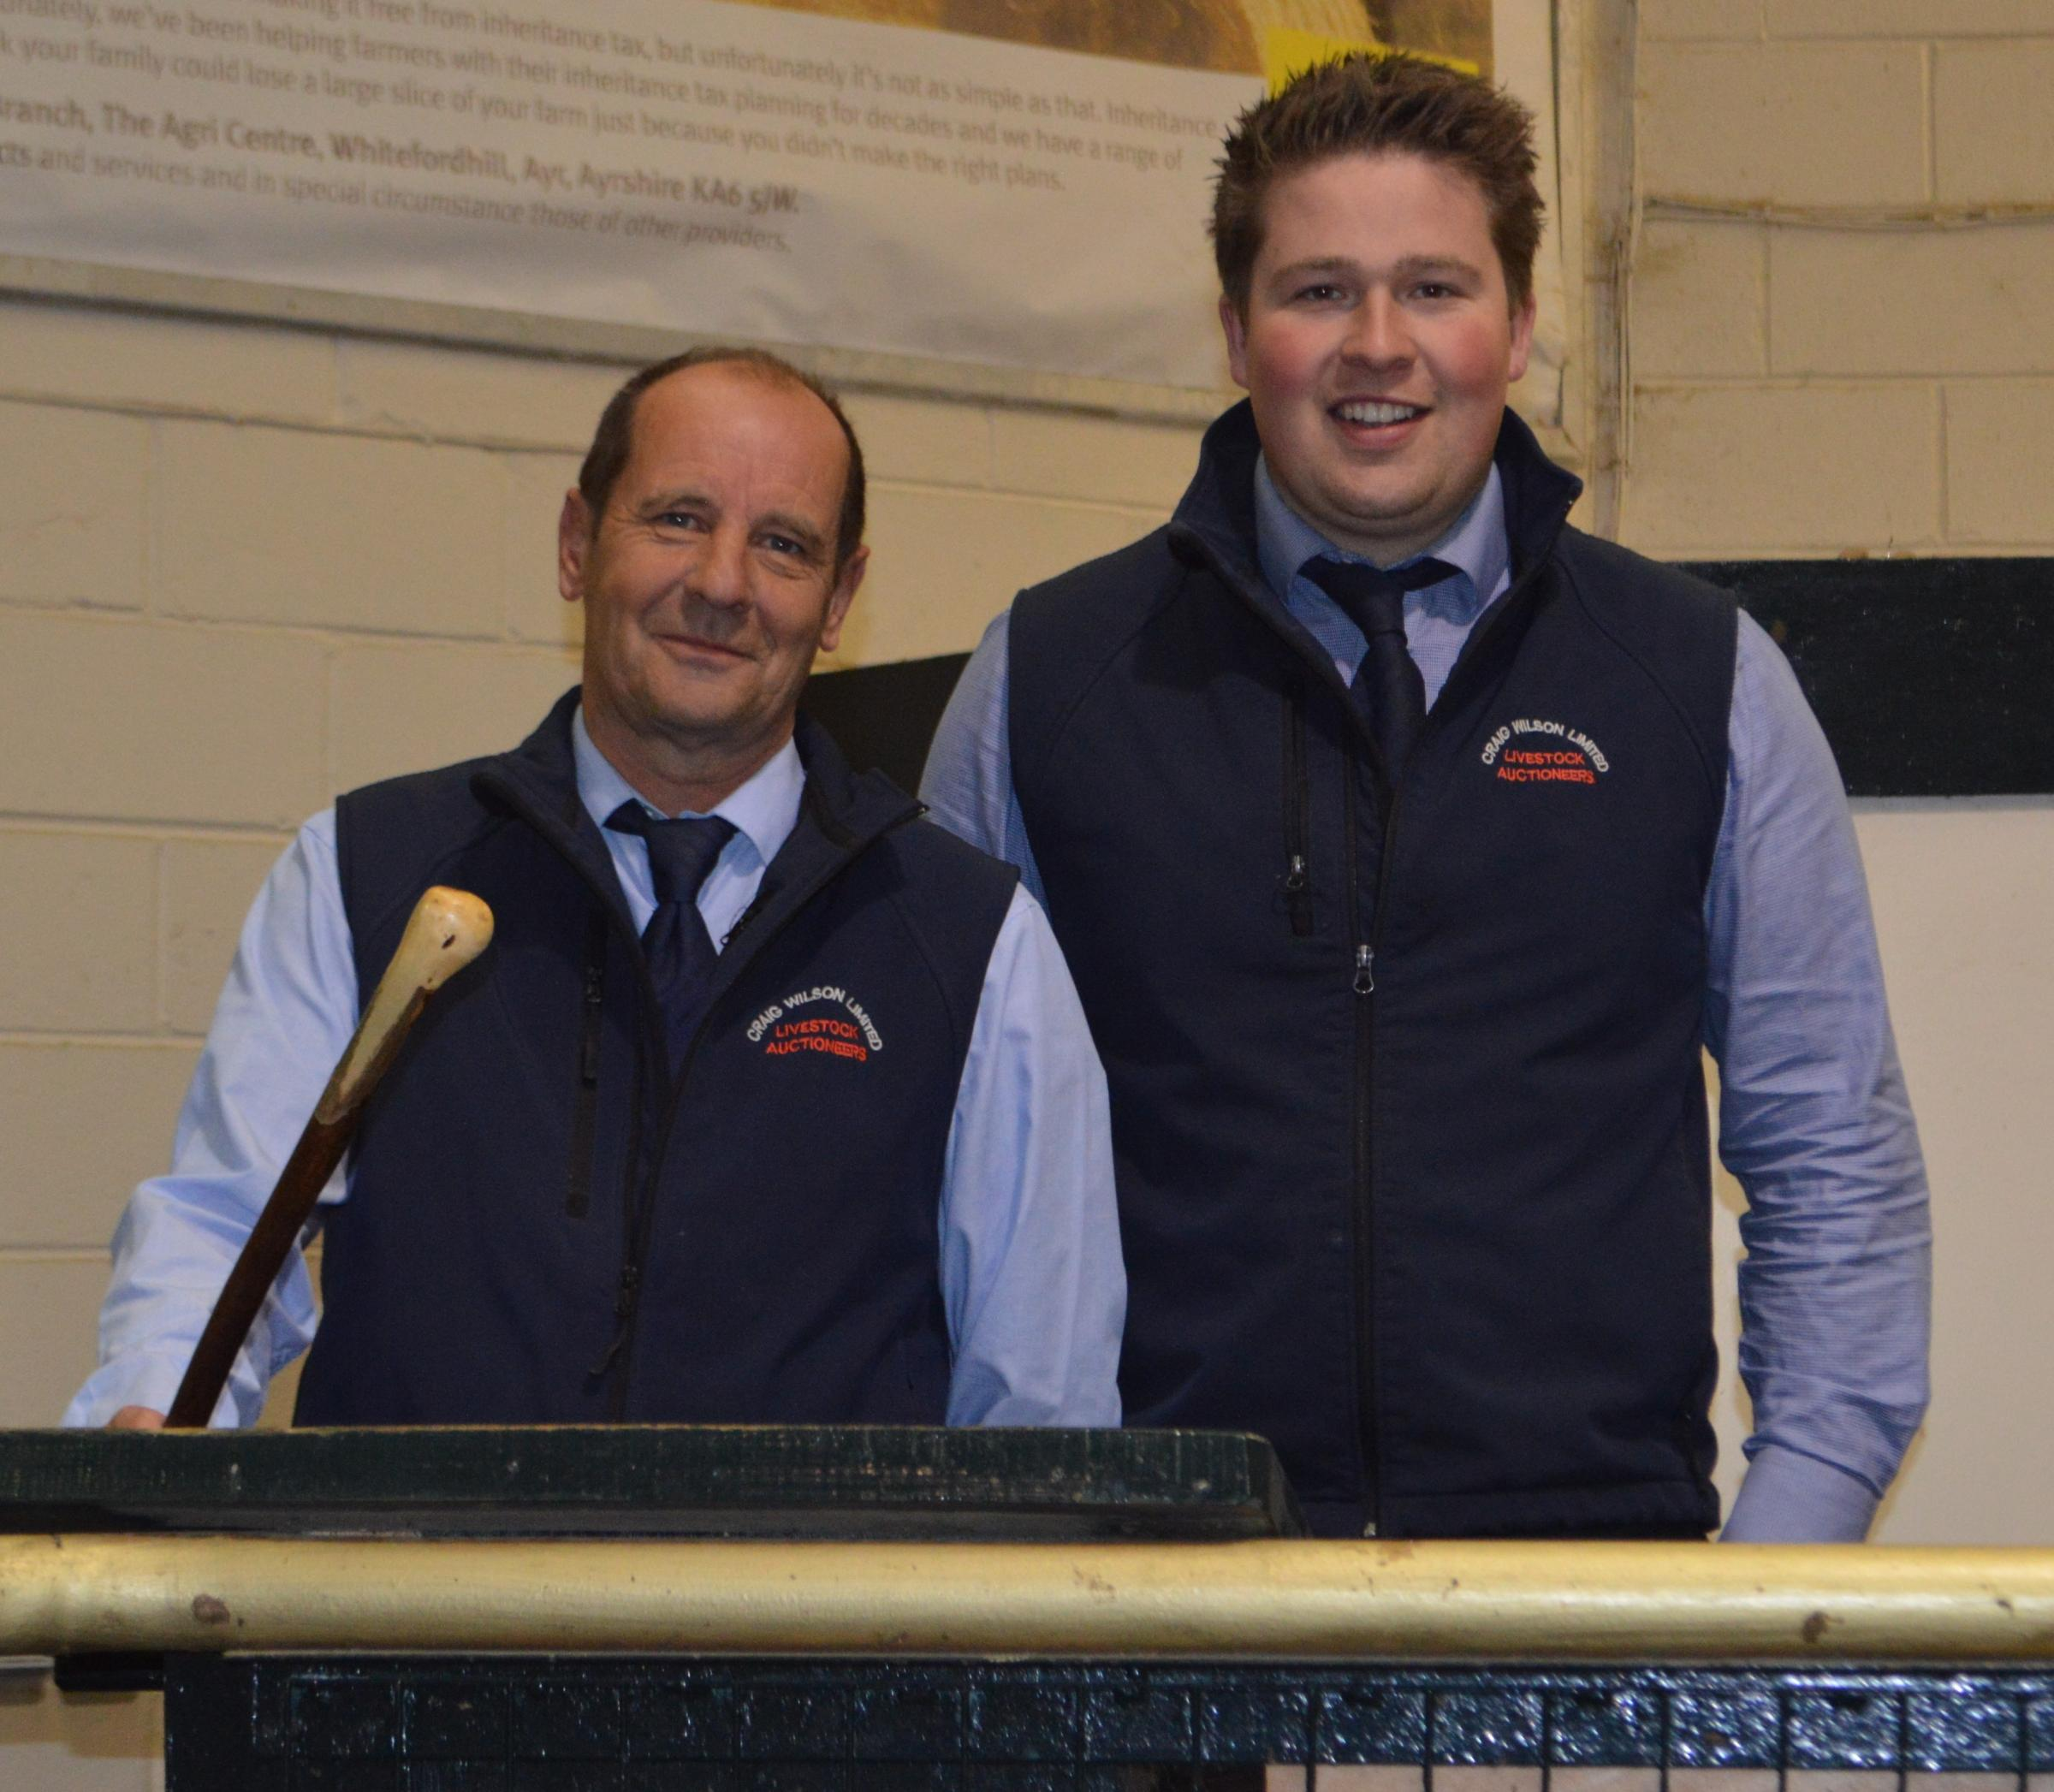 Livestock auctioneers for Craig Wilson Ltd - Willie Hamilton and Drew Kennedy